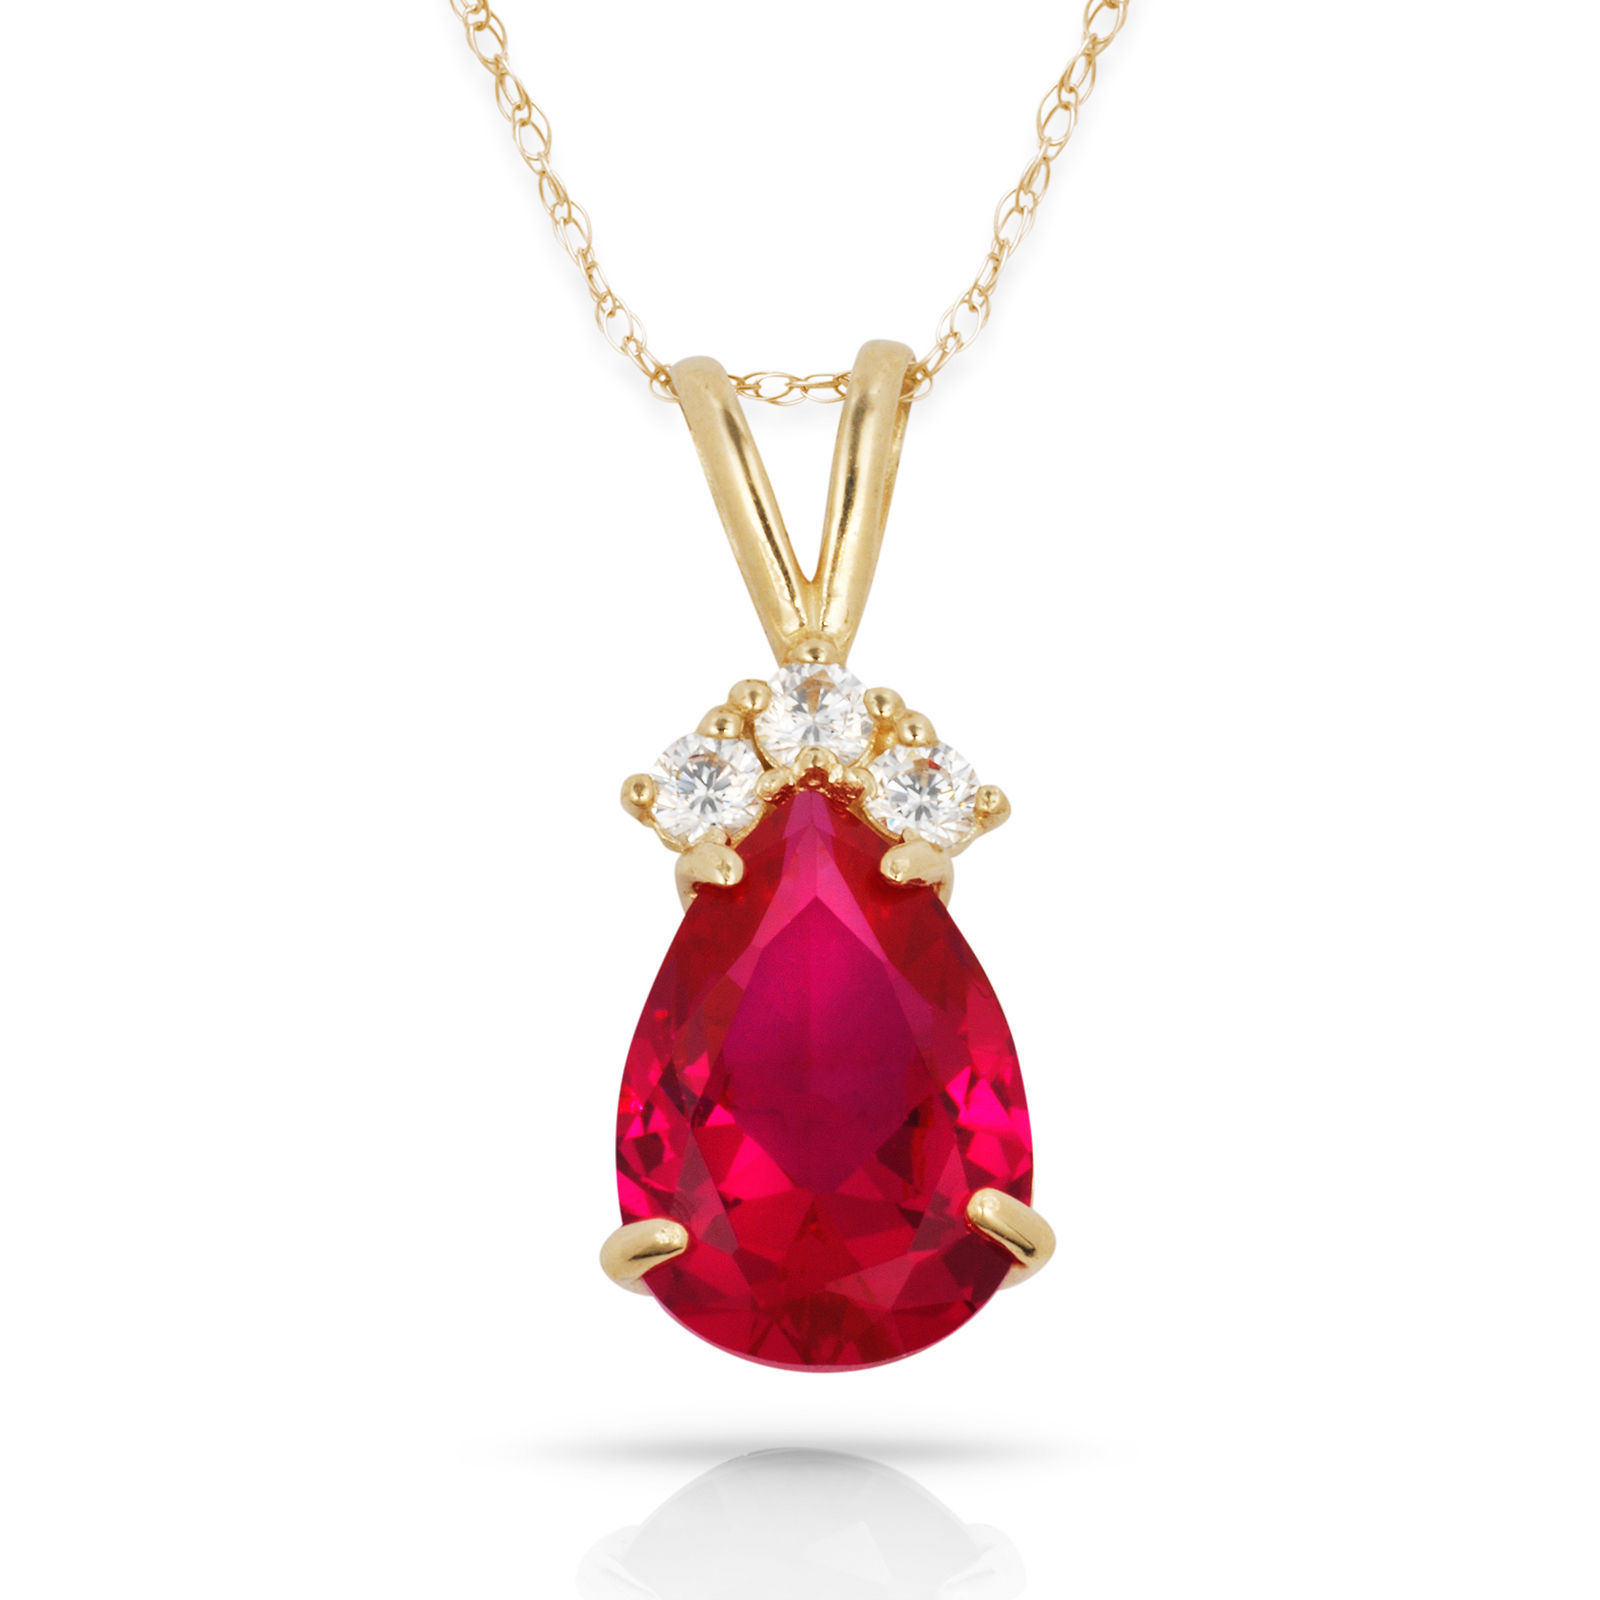 3.70 CT  Ruby Pear Shape 4 Stone Gemstone Pendant & Necklace 14K Y Gold